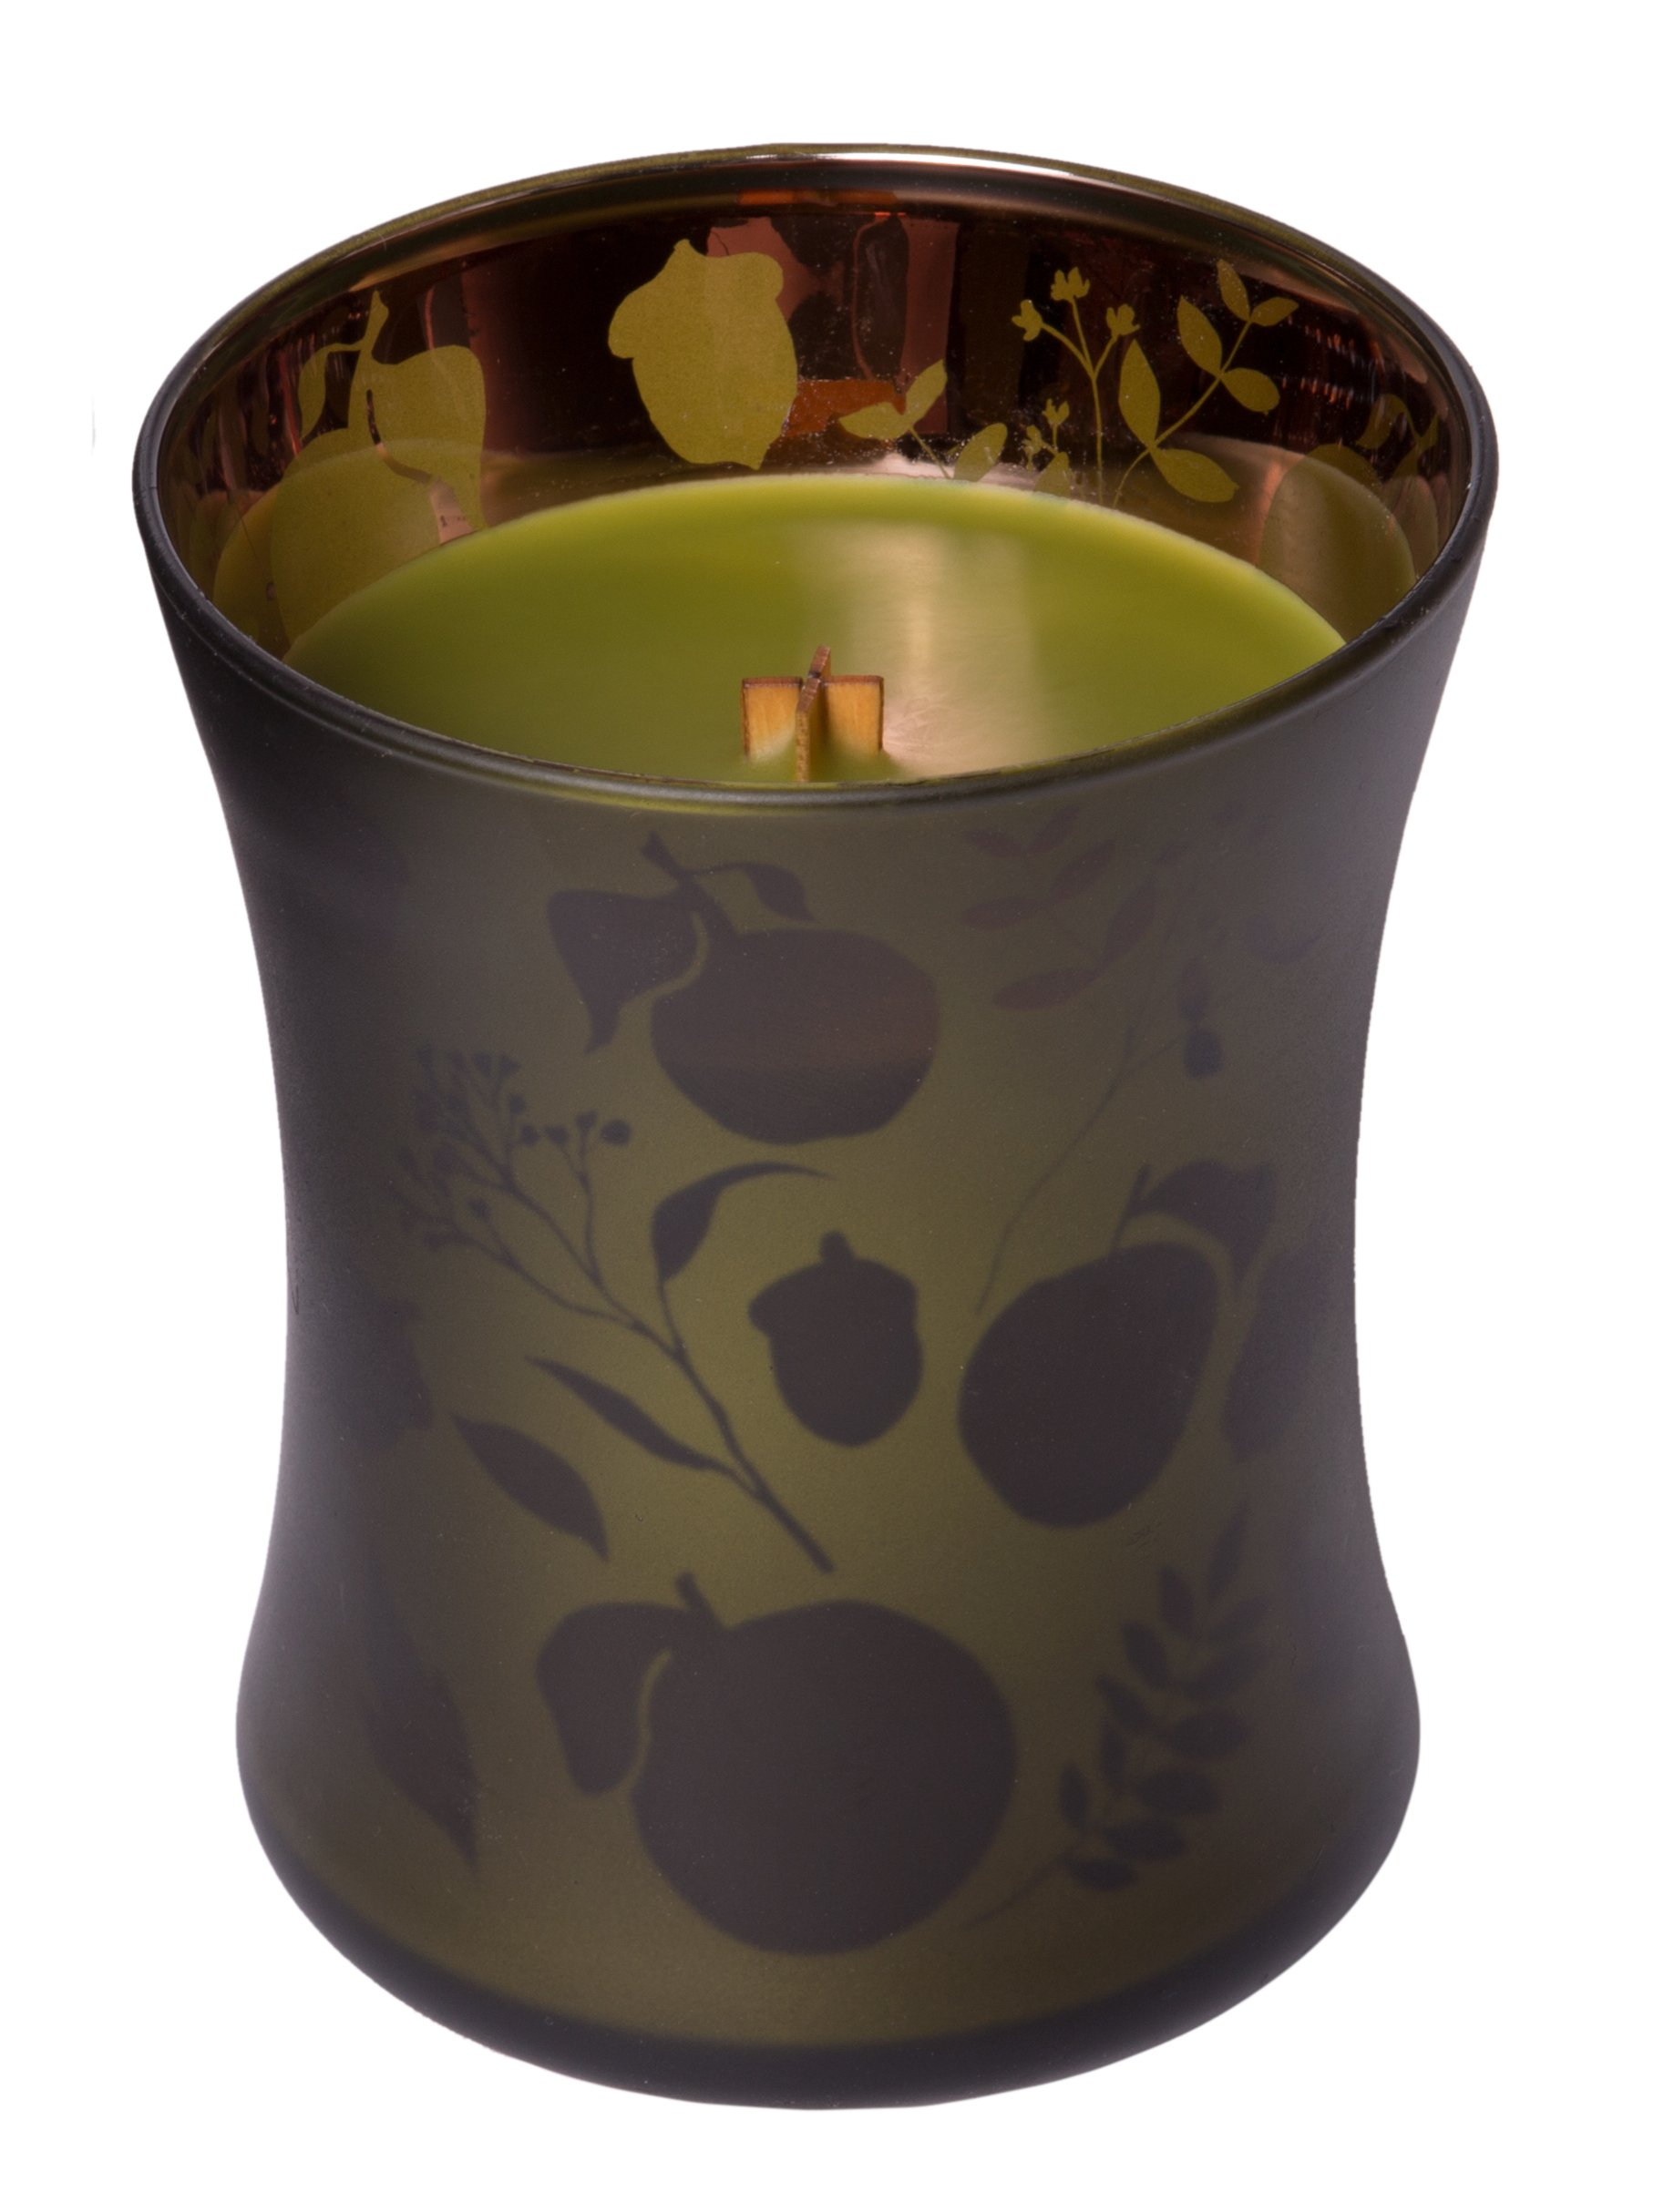 WoodWick Apple Basket, Highly Scented Candle, Dancing Glow Hourglass Jar, Medium 4-inch, 9.7 oz